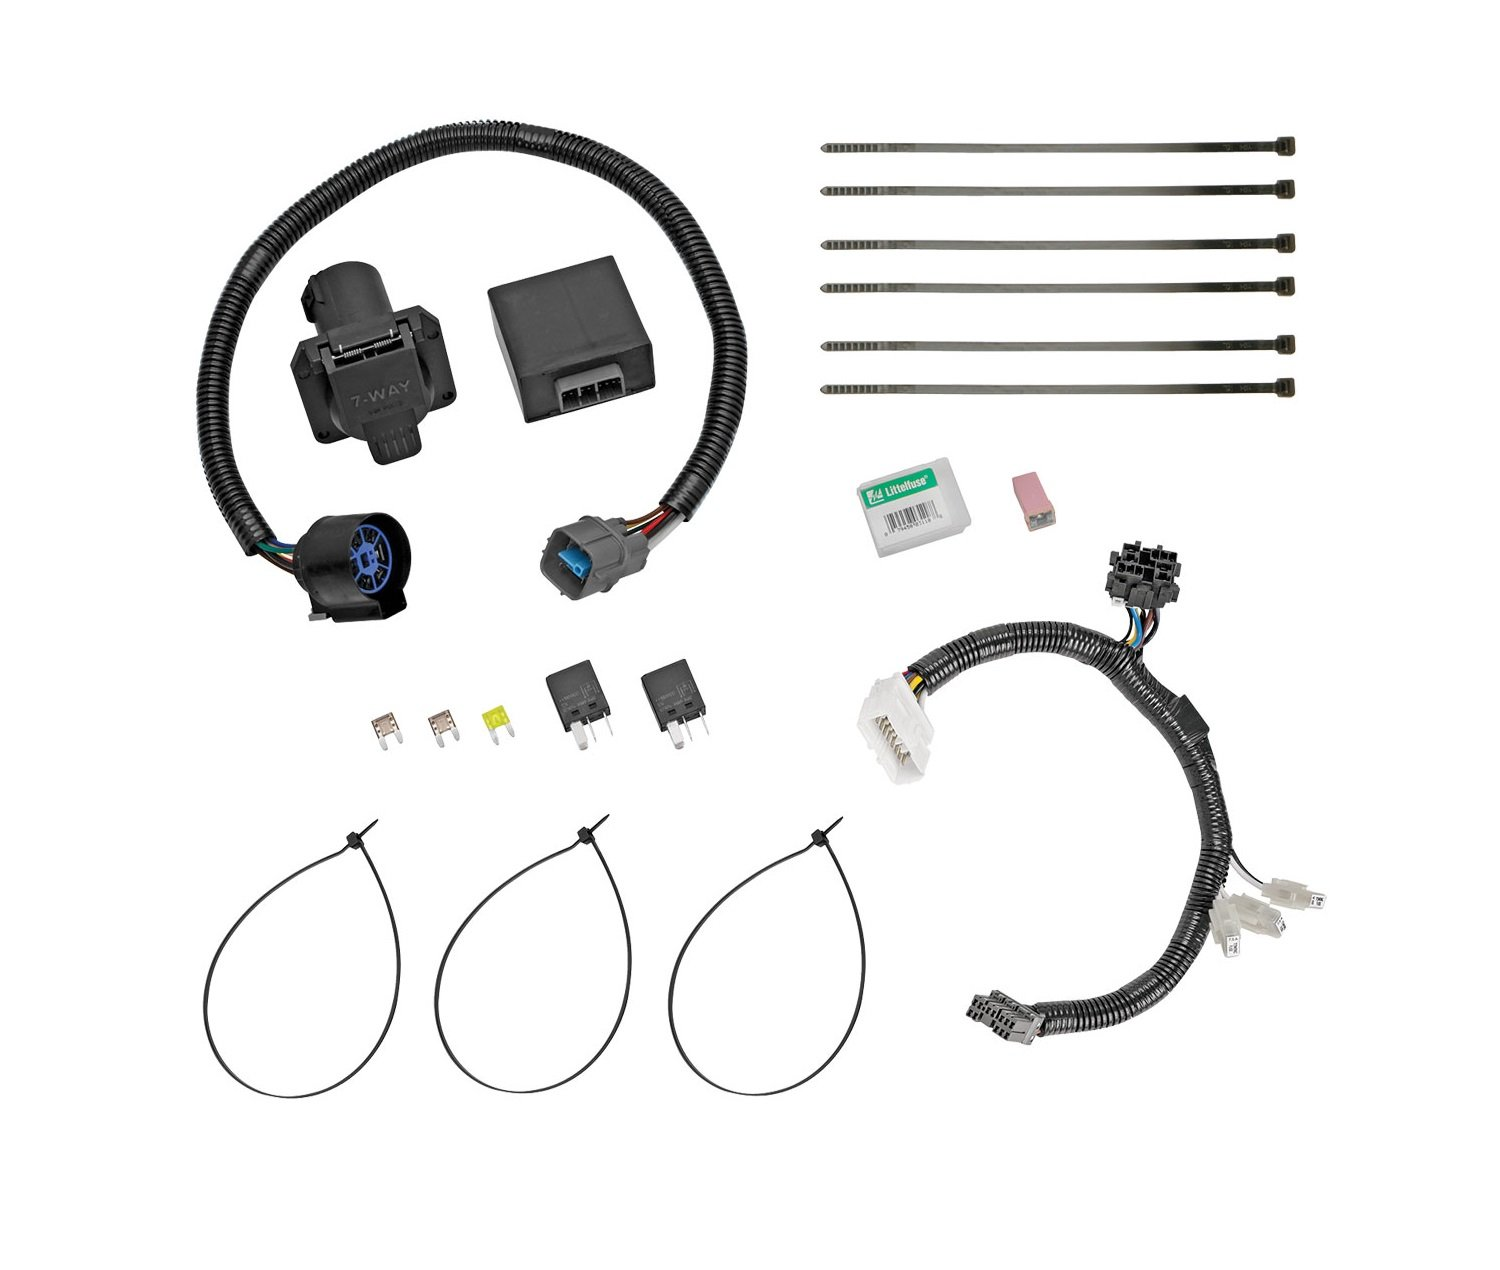 amazon com tow ready 118265 trailer wiring connector kit for hondaamazon com tow ready 118265 trailer wiring connector kit for honda pilot automotive